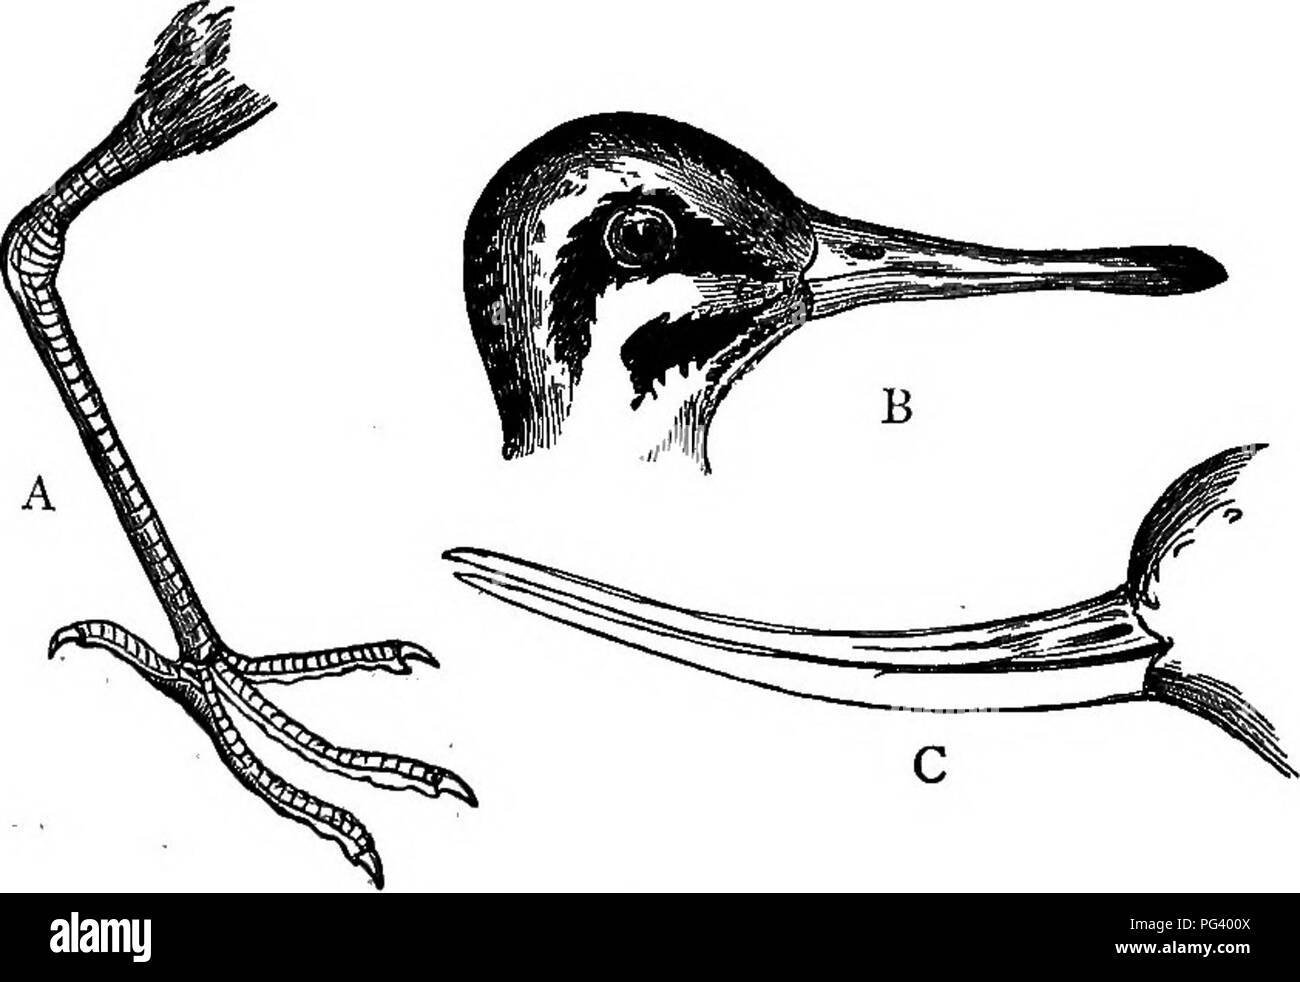 . A text-book of agricultural zoology. Zoology, Economic. 378 BRITISH BIEDS. long bills, which may be straight or curved; the three forward toes may be partially webbed as in the Avocet {Recurvirostra avocetta), or lobed as in the Phalaropes (Phcdaropus), or united at their base by webbing as in the Curlew {Numenius arqmta),'. Fig. 190.—SooLOPAom^ A, Leg and foot of Curlew; e, Head of Snipe; c, Beak of Avocet. (Nicholson.) but many are free. The legs are usually long and slender and adapted to wading (fig. 190). The basal webbing of the foot is not shown in the fisure. G-DLLS AND Teens (Gavi^) - Stock Image